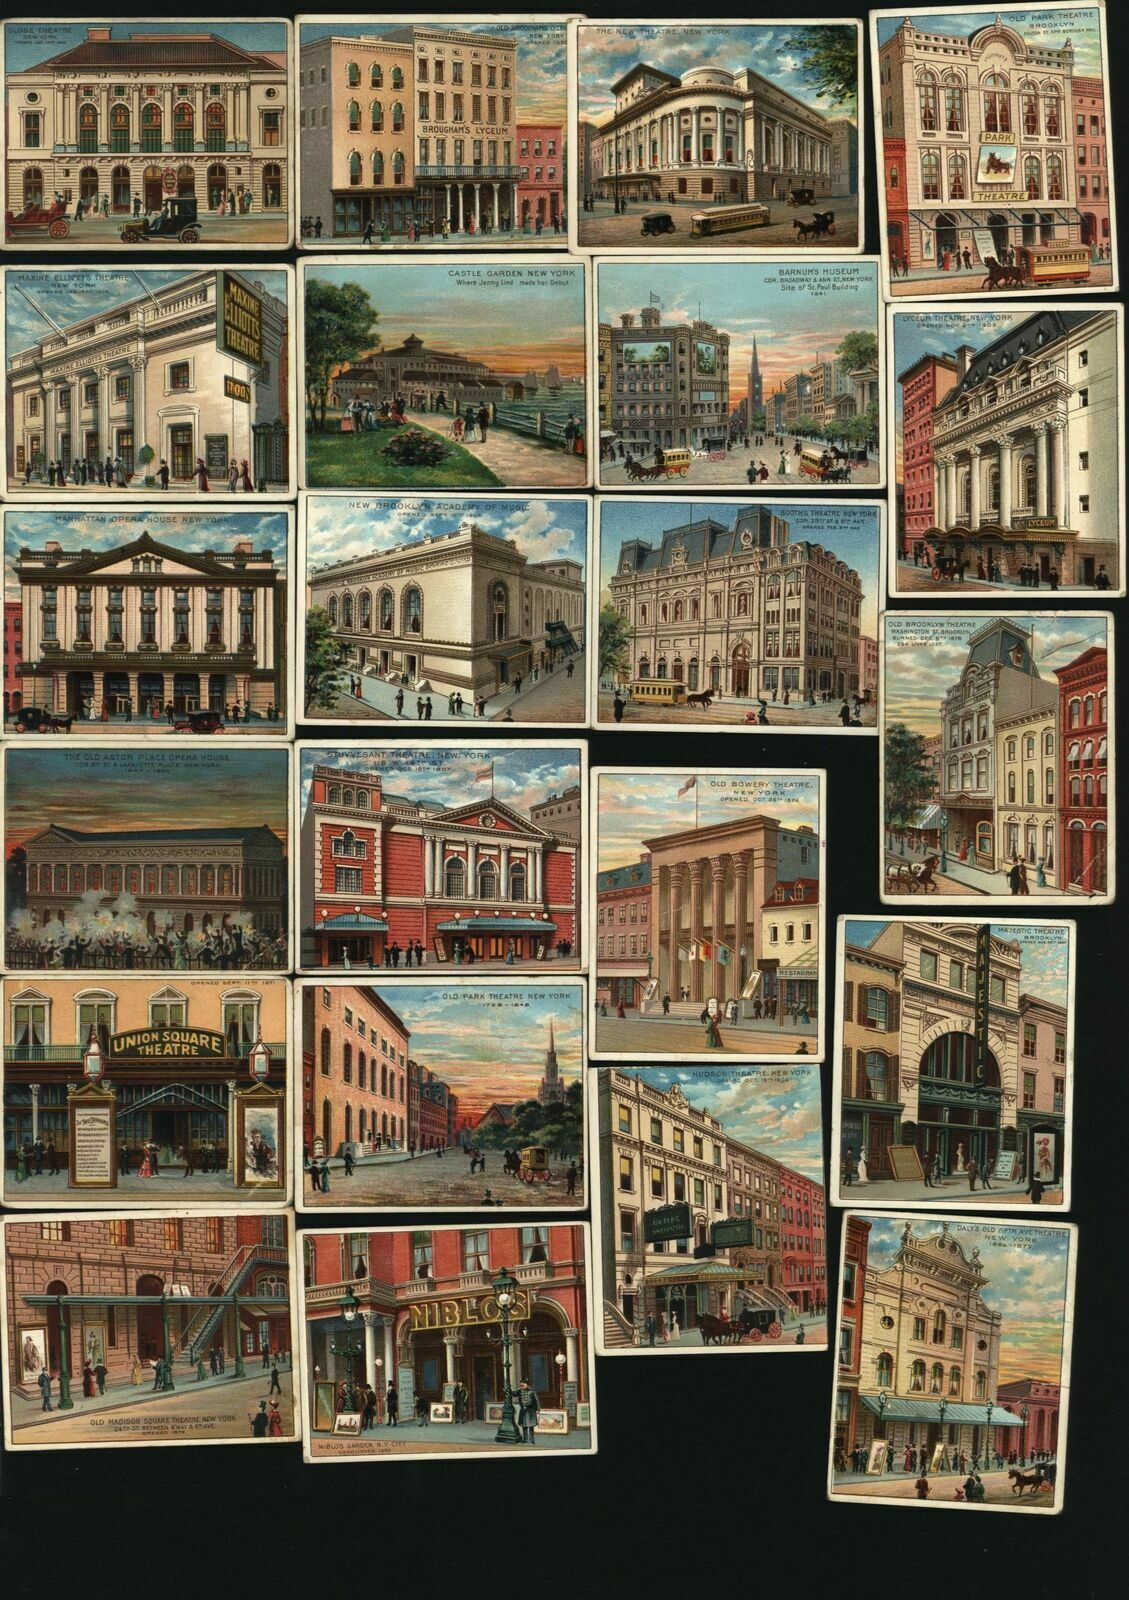 New York City c.1910 Theatres lot x 22 chromo cigar cards wonderful posters Good (New York City- Theatres) Issued c.1910-12 by Between the Acts- Little Cigars (American Tobacco Company Trust). Lot of twenty two (22) most appealing